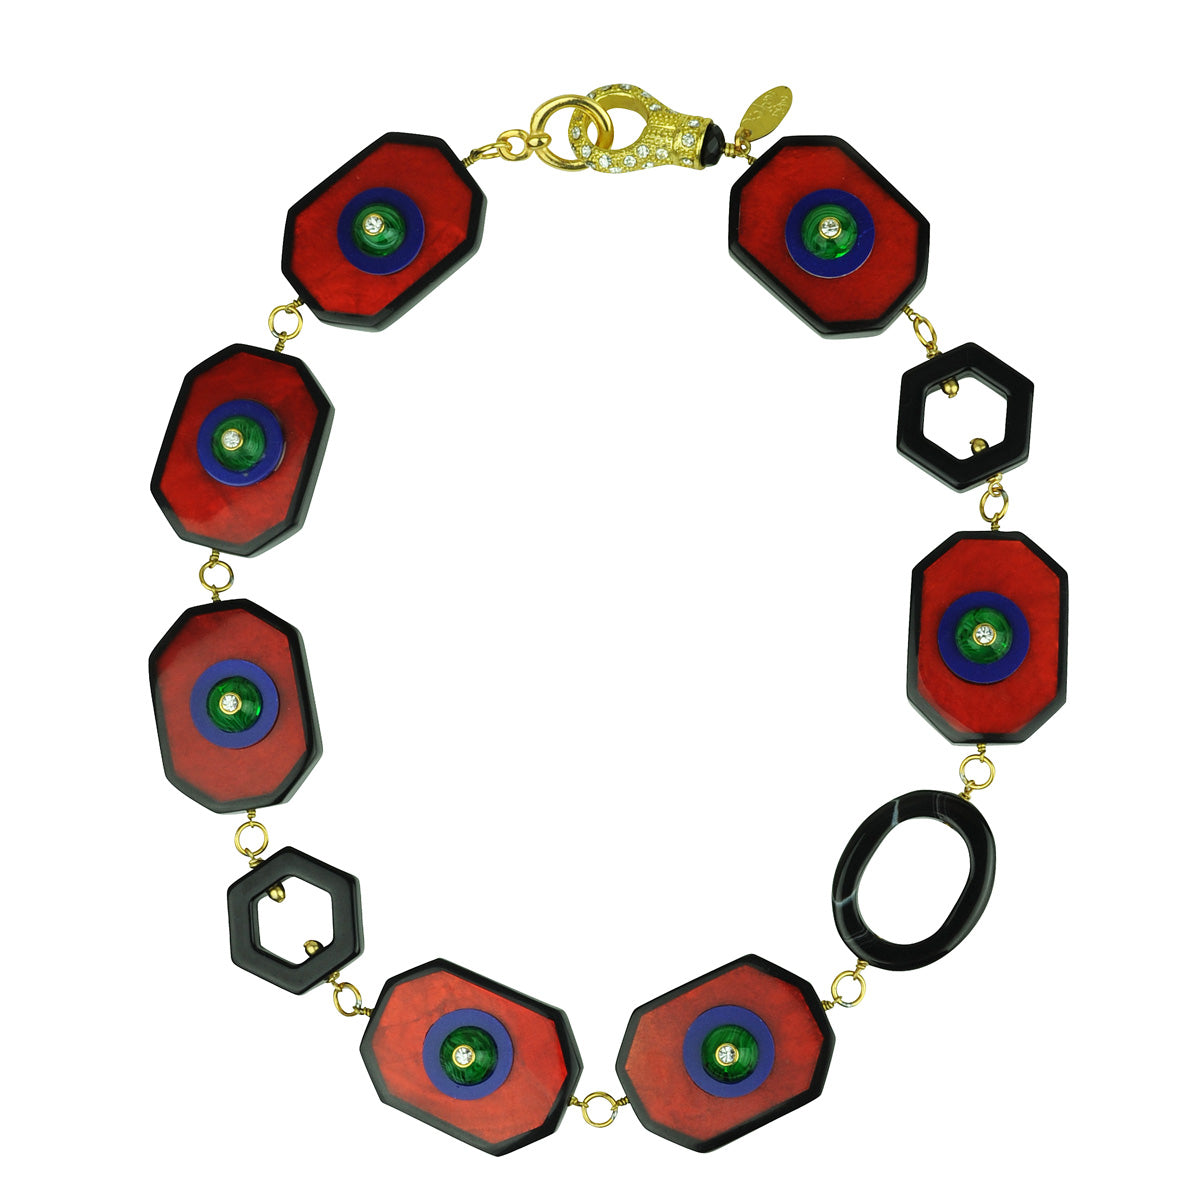 Katerina psoma Red Resin Short Necklace with Vintage Cabochons